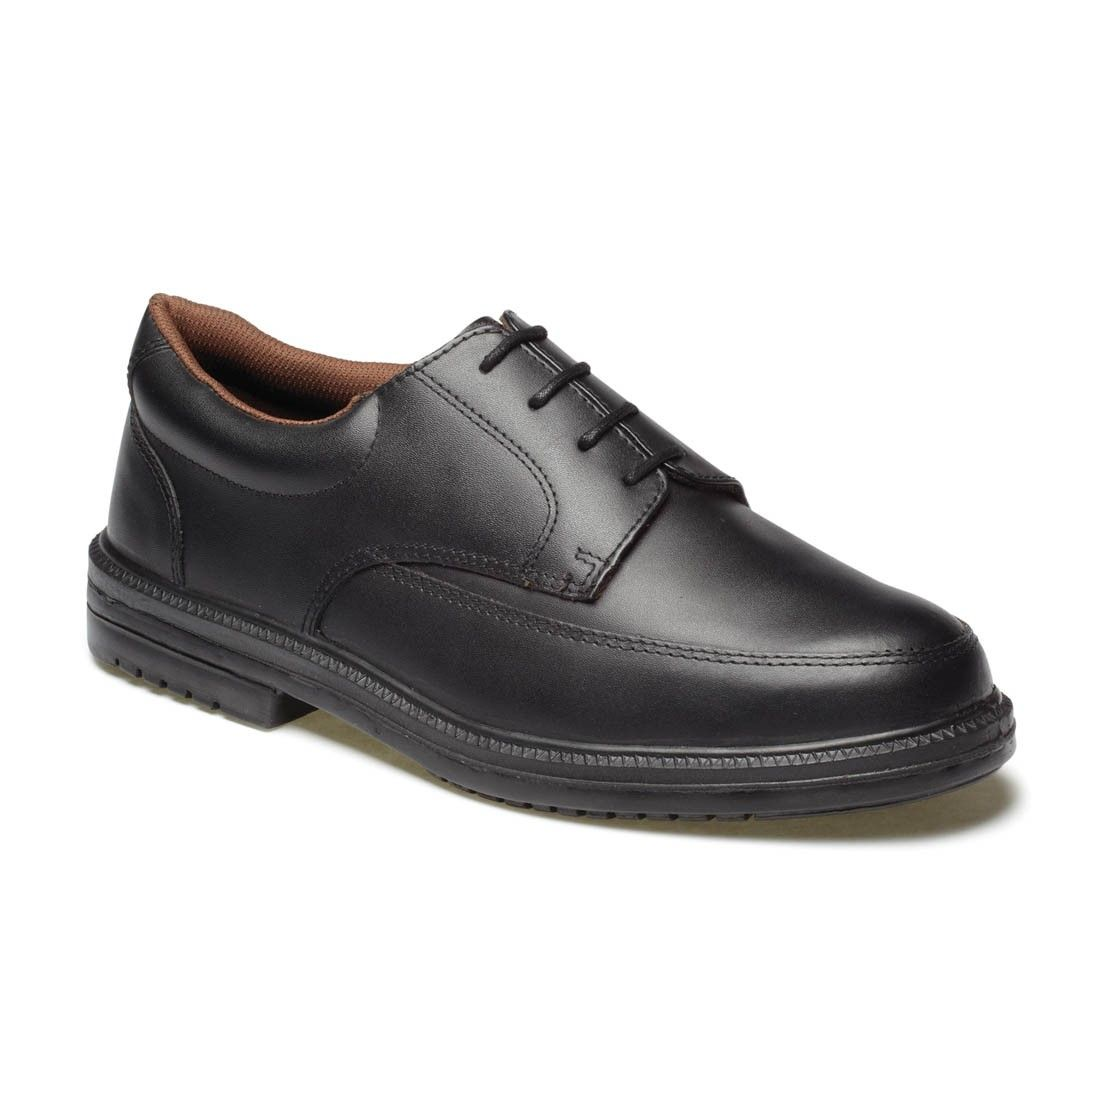 Mens Dickies Executive Safety Shoe Leather Steel Toe Black